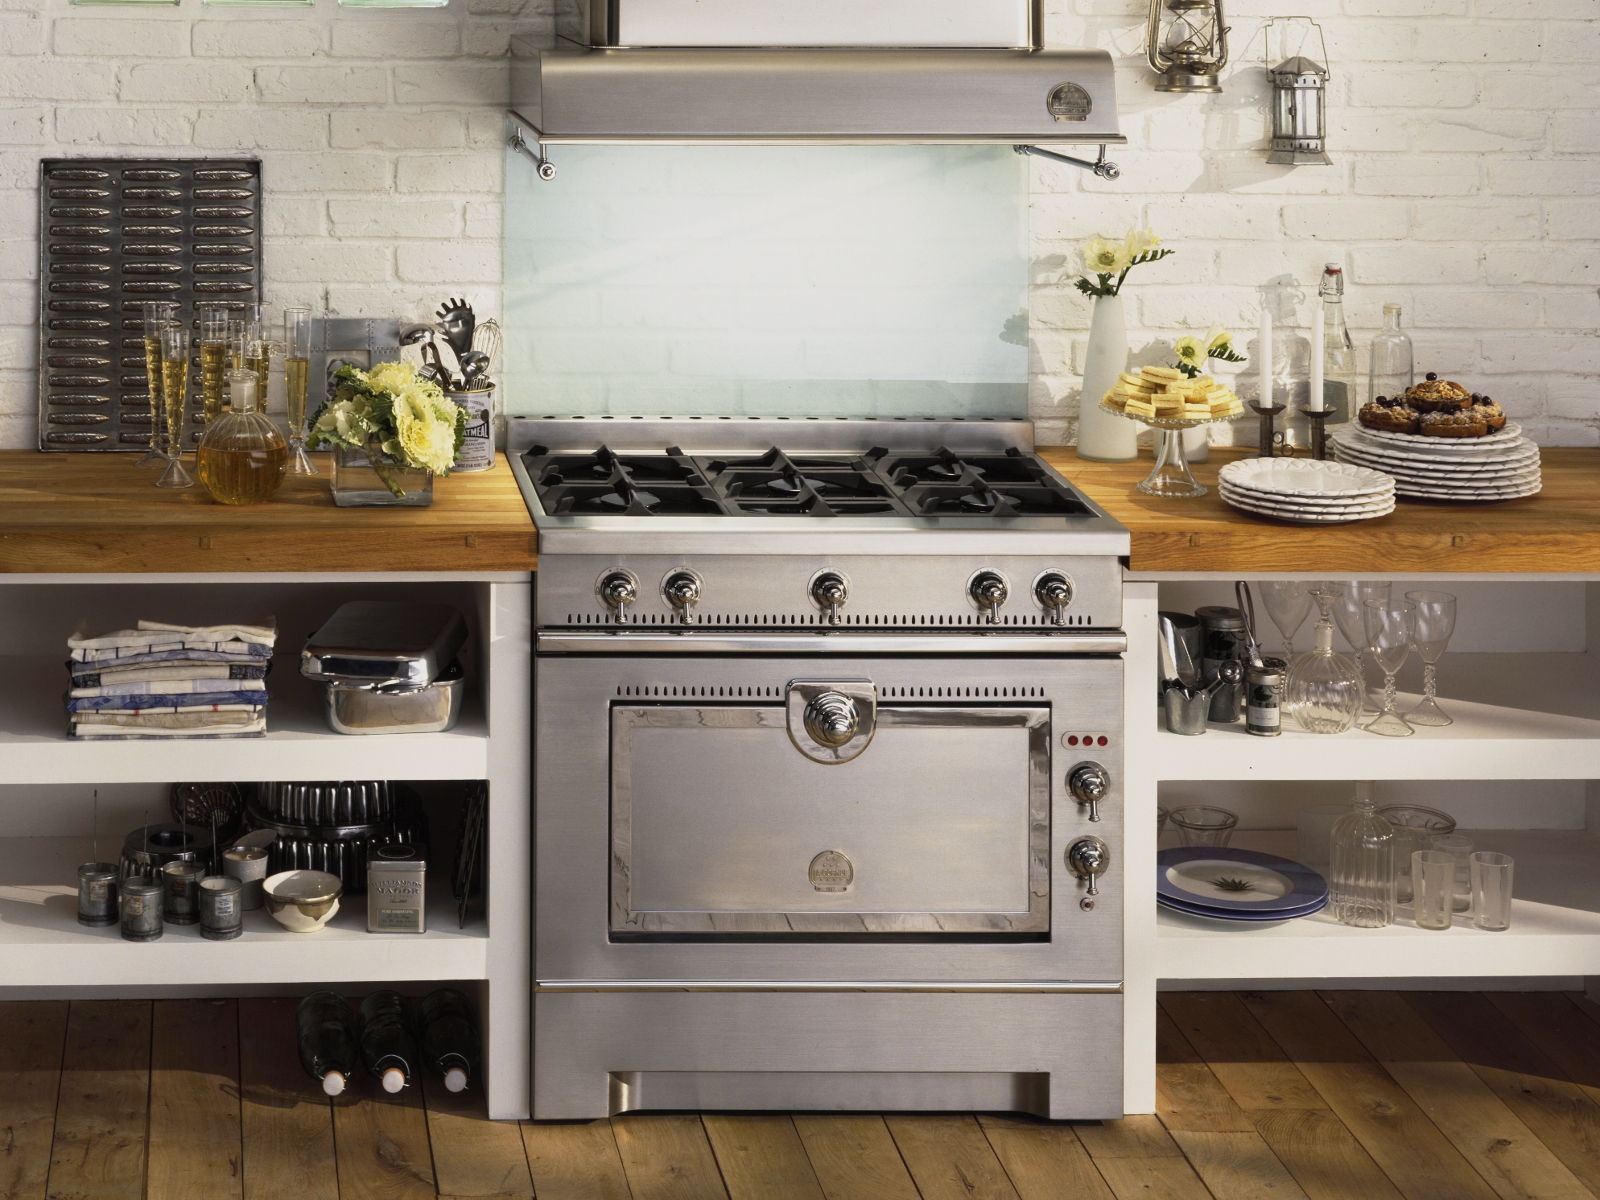 stainless steel cooker grand maman 90 by la cornue. Black Bedroom Furniture Sets. Home Design Ideas